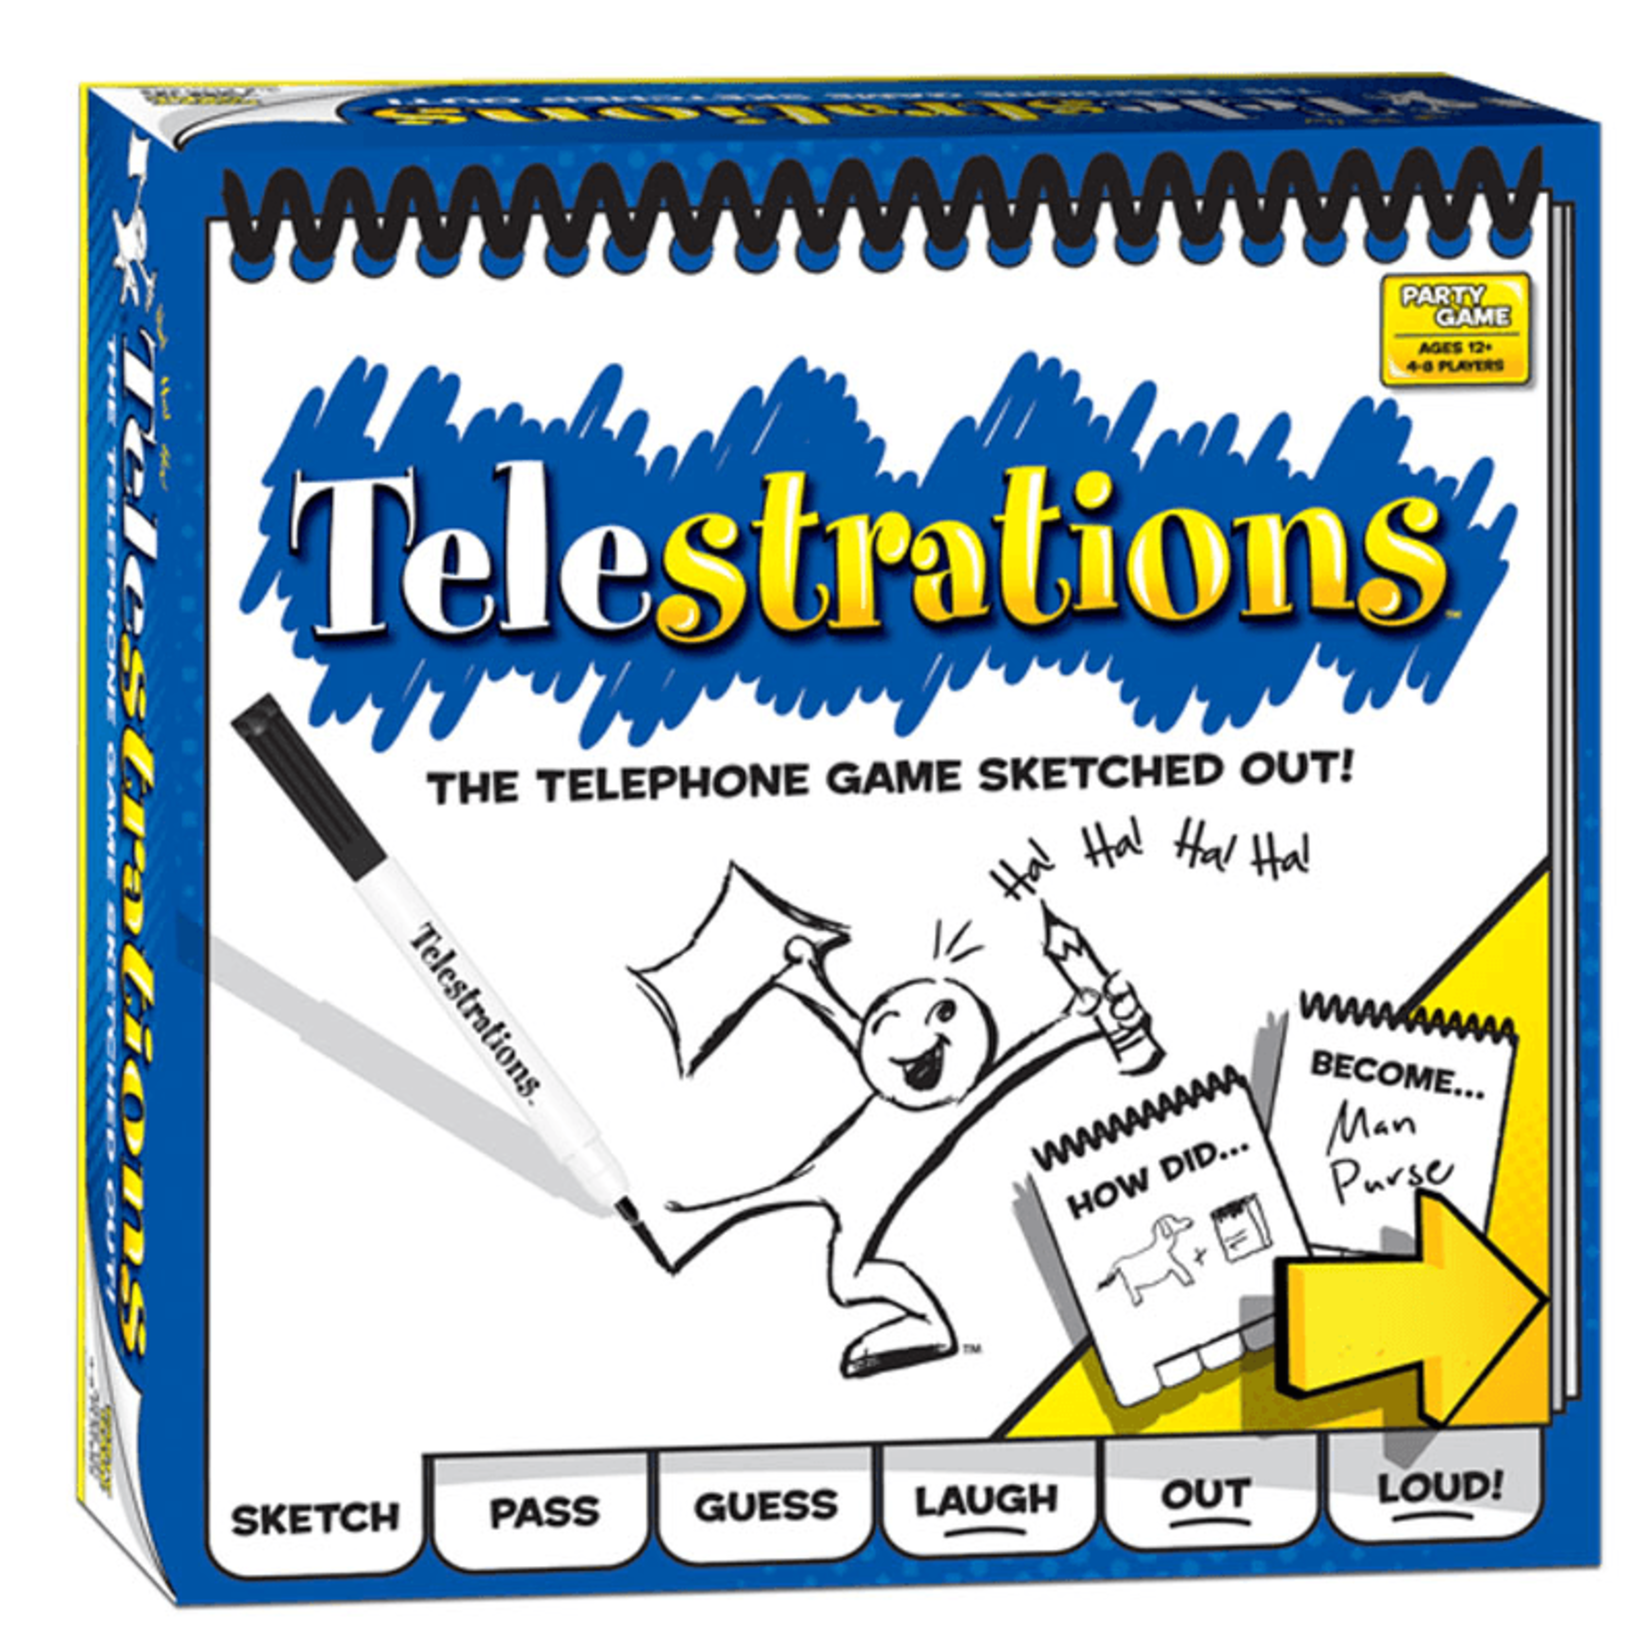 The Op Telestrations